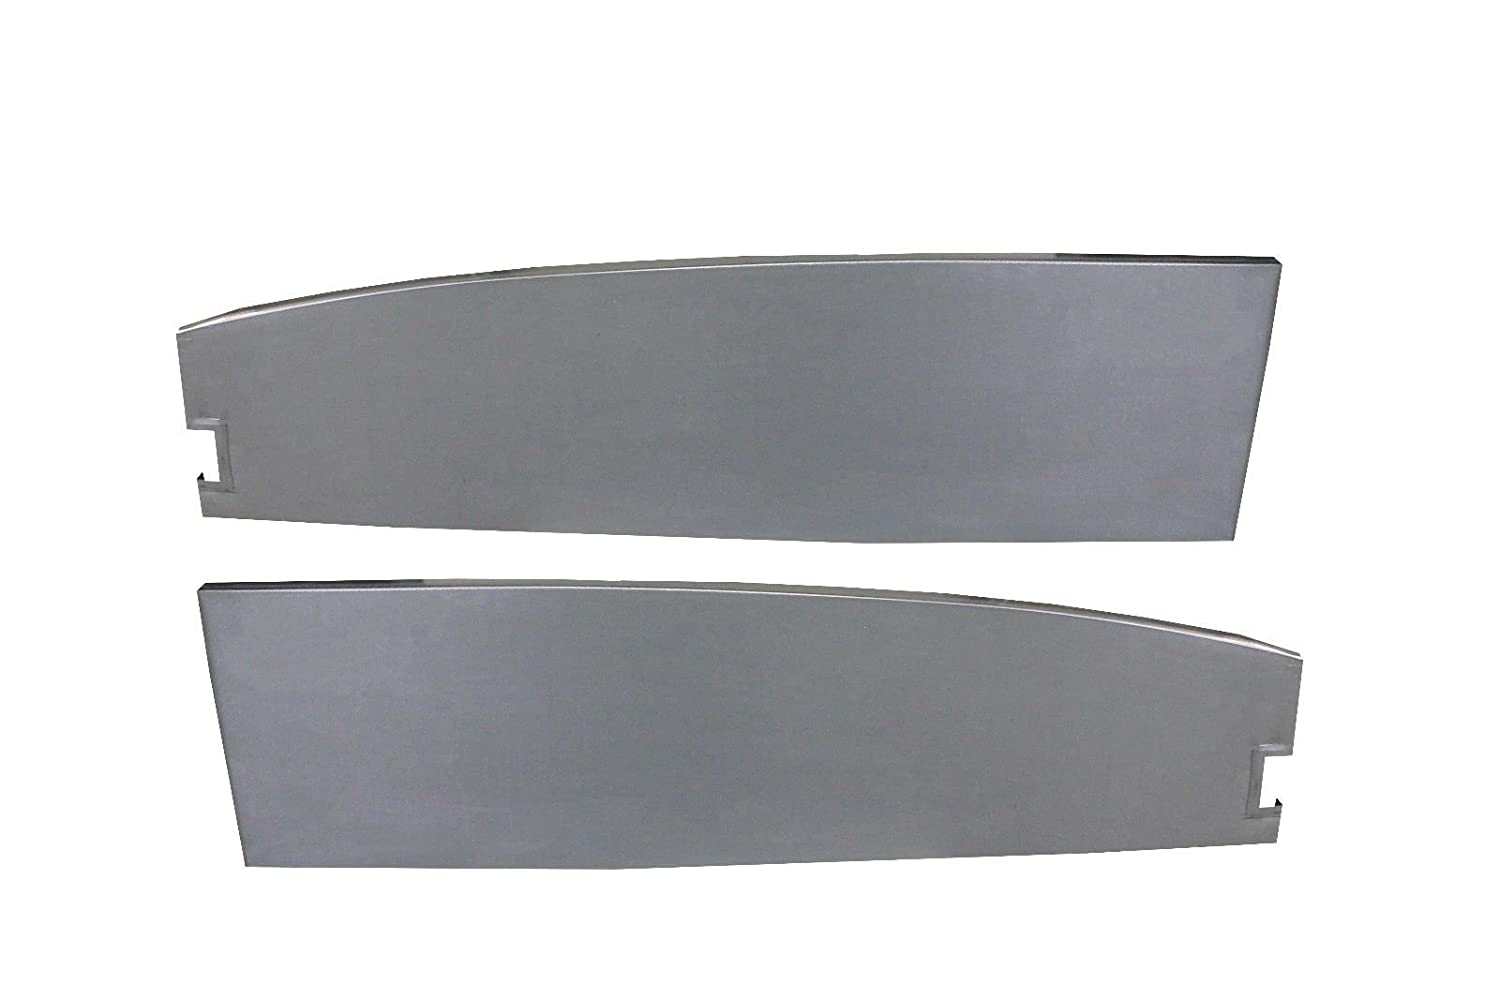 Motor City Sheet Metal Works With 1935 1936 1937 Ford Pickup Truck Door Patch Panels NEW PAIR!!!